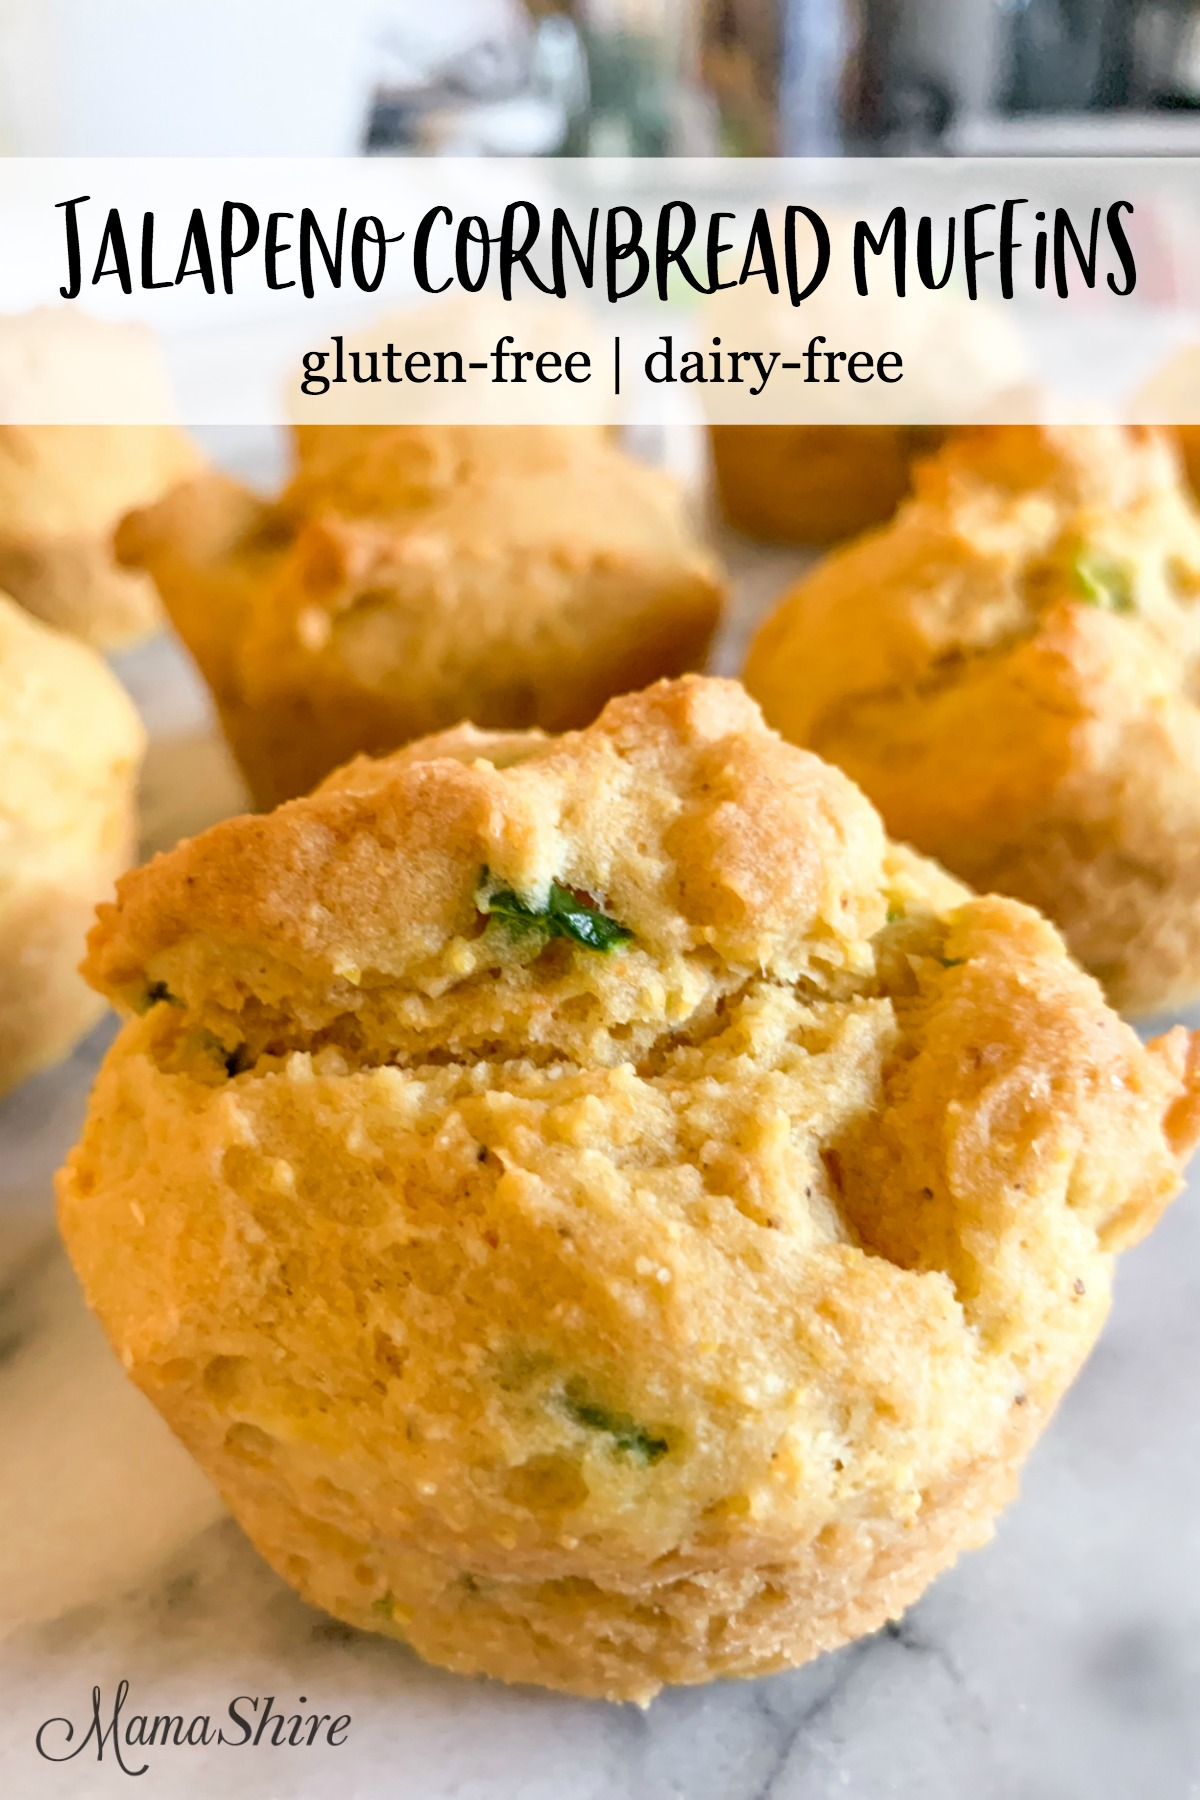 Jalapeno cornbread muffins made gluten-free and dairy-free.